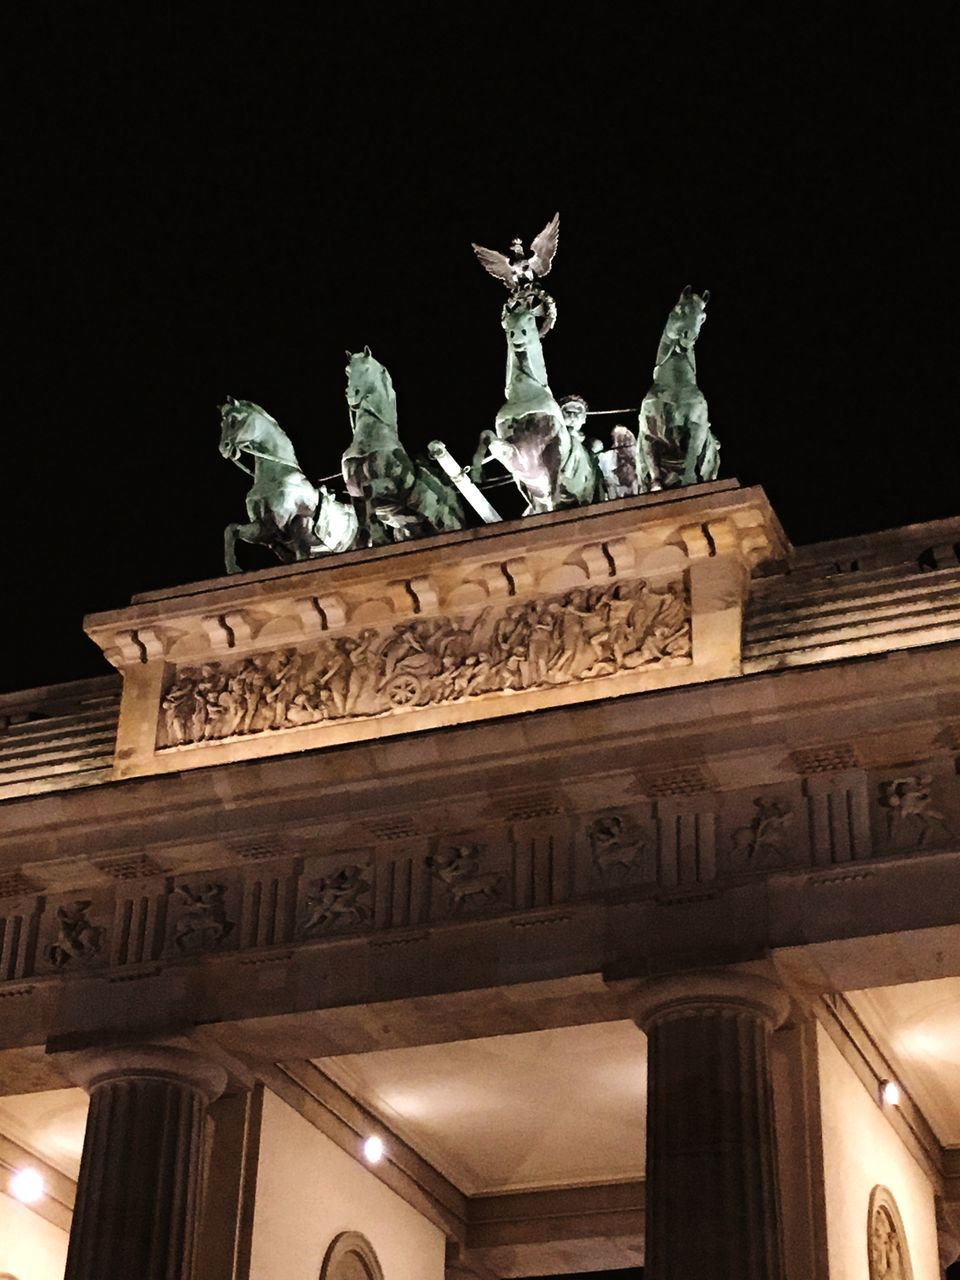 statue, sculpture, low angle view, architecture, travel destinations, art and craft, history, tourism, built structure, human representation, carving - craft product, outdoors, night, monument, triumphal arch, travel, architectural column, no people, sky, city gate, illuminated, building exterior